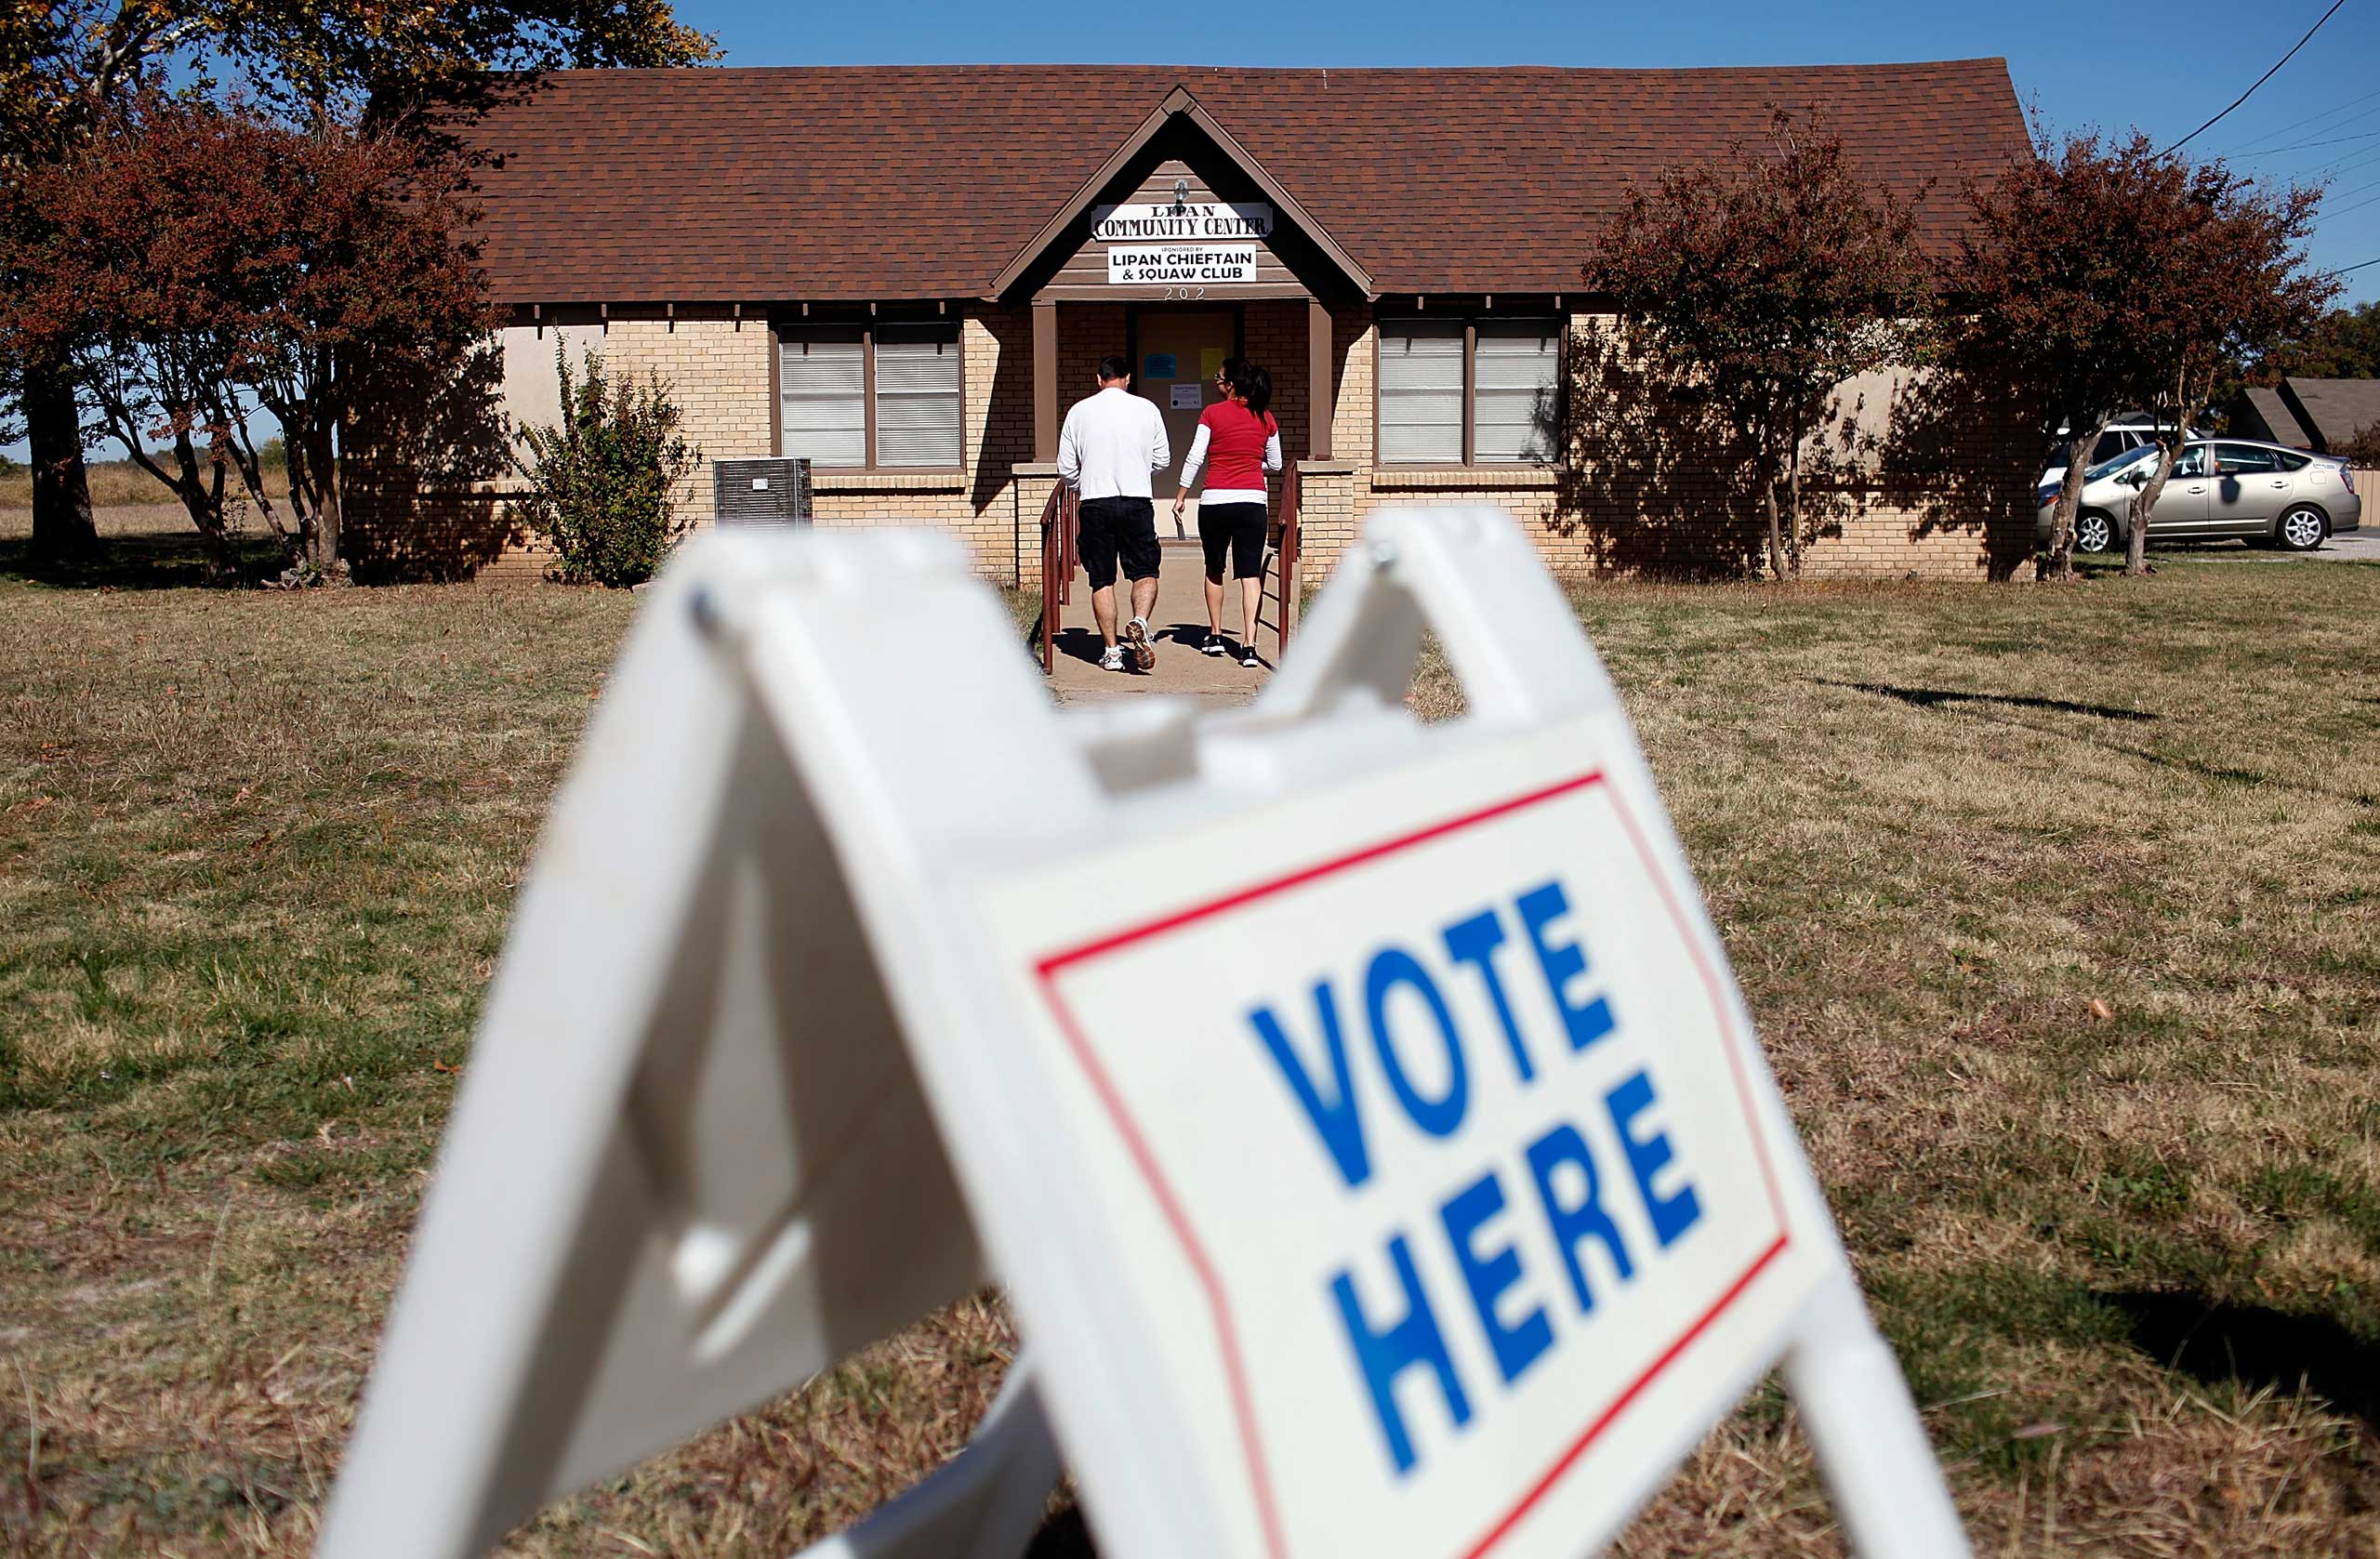 A polling location in Lipan, Texas seen during the last presidential elections in 2012.